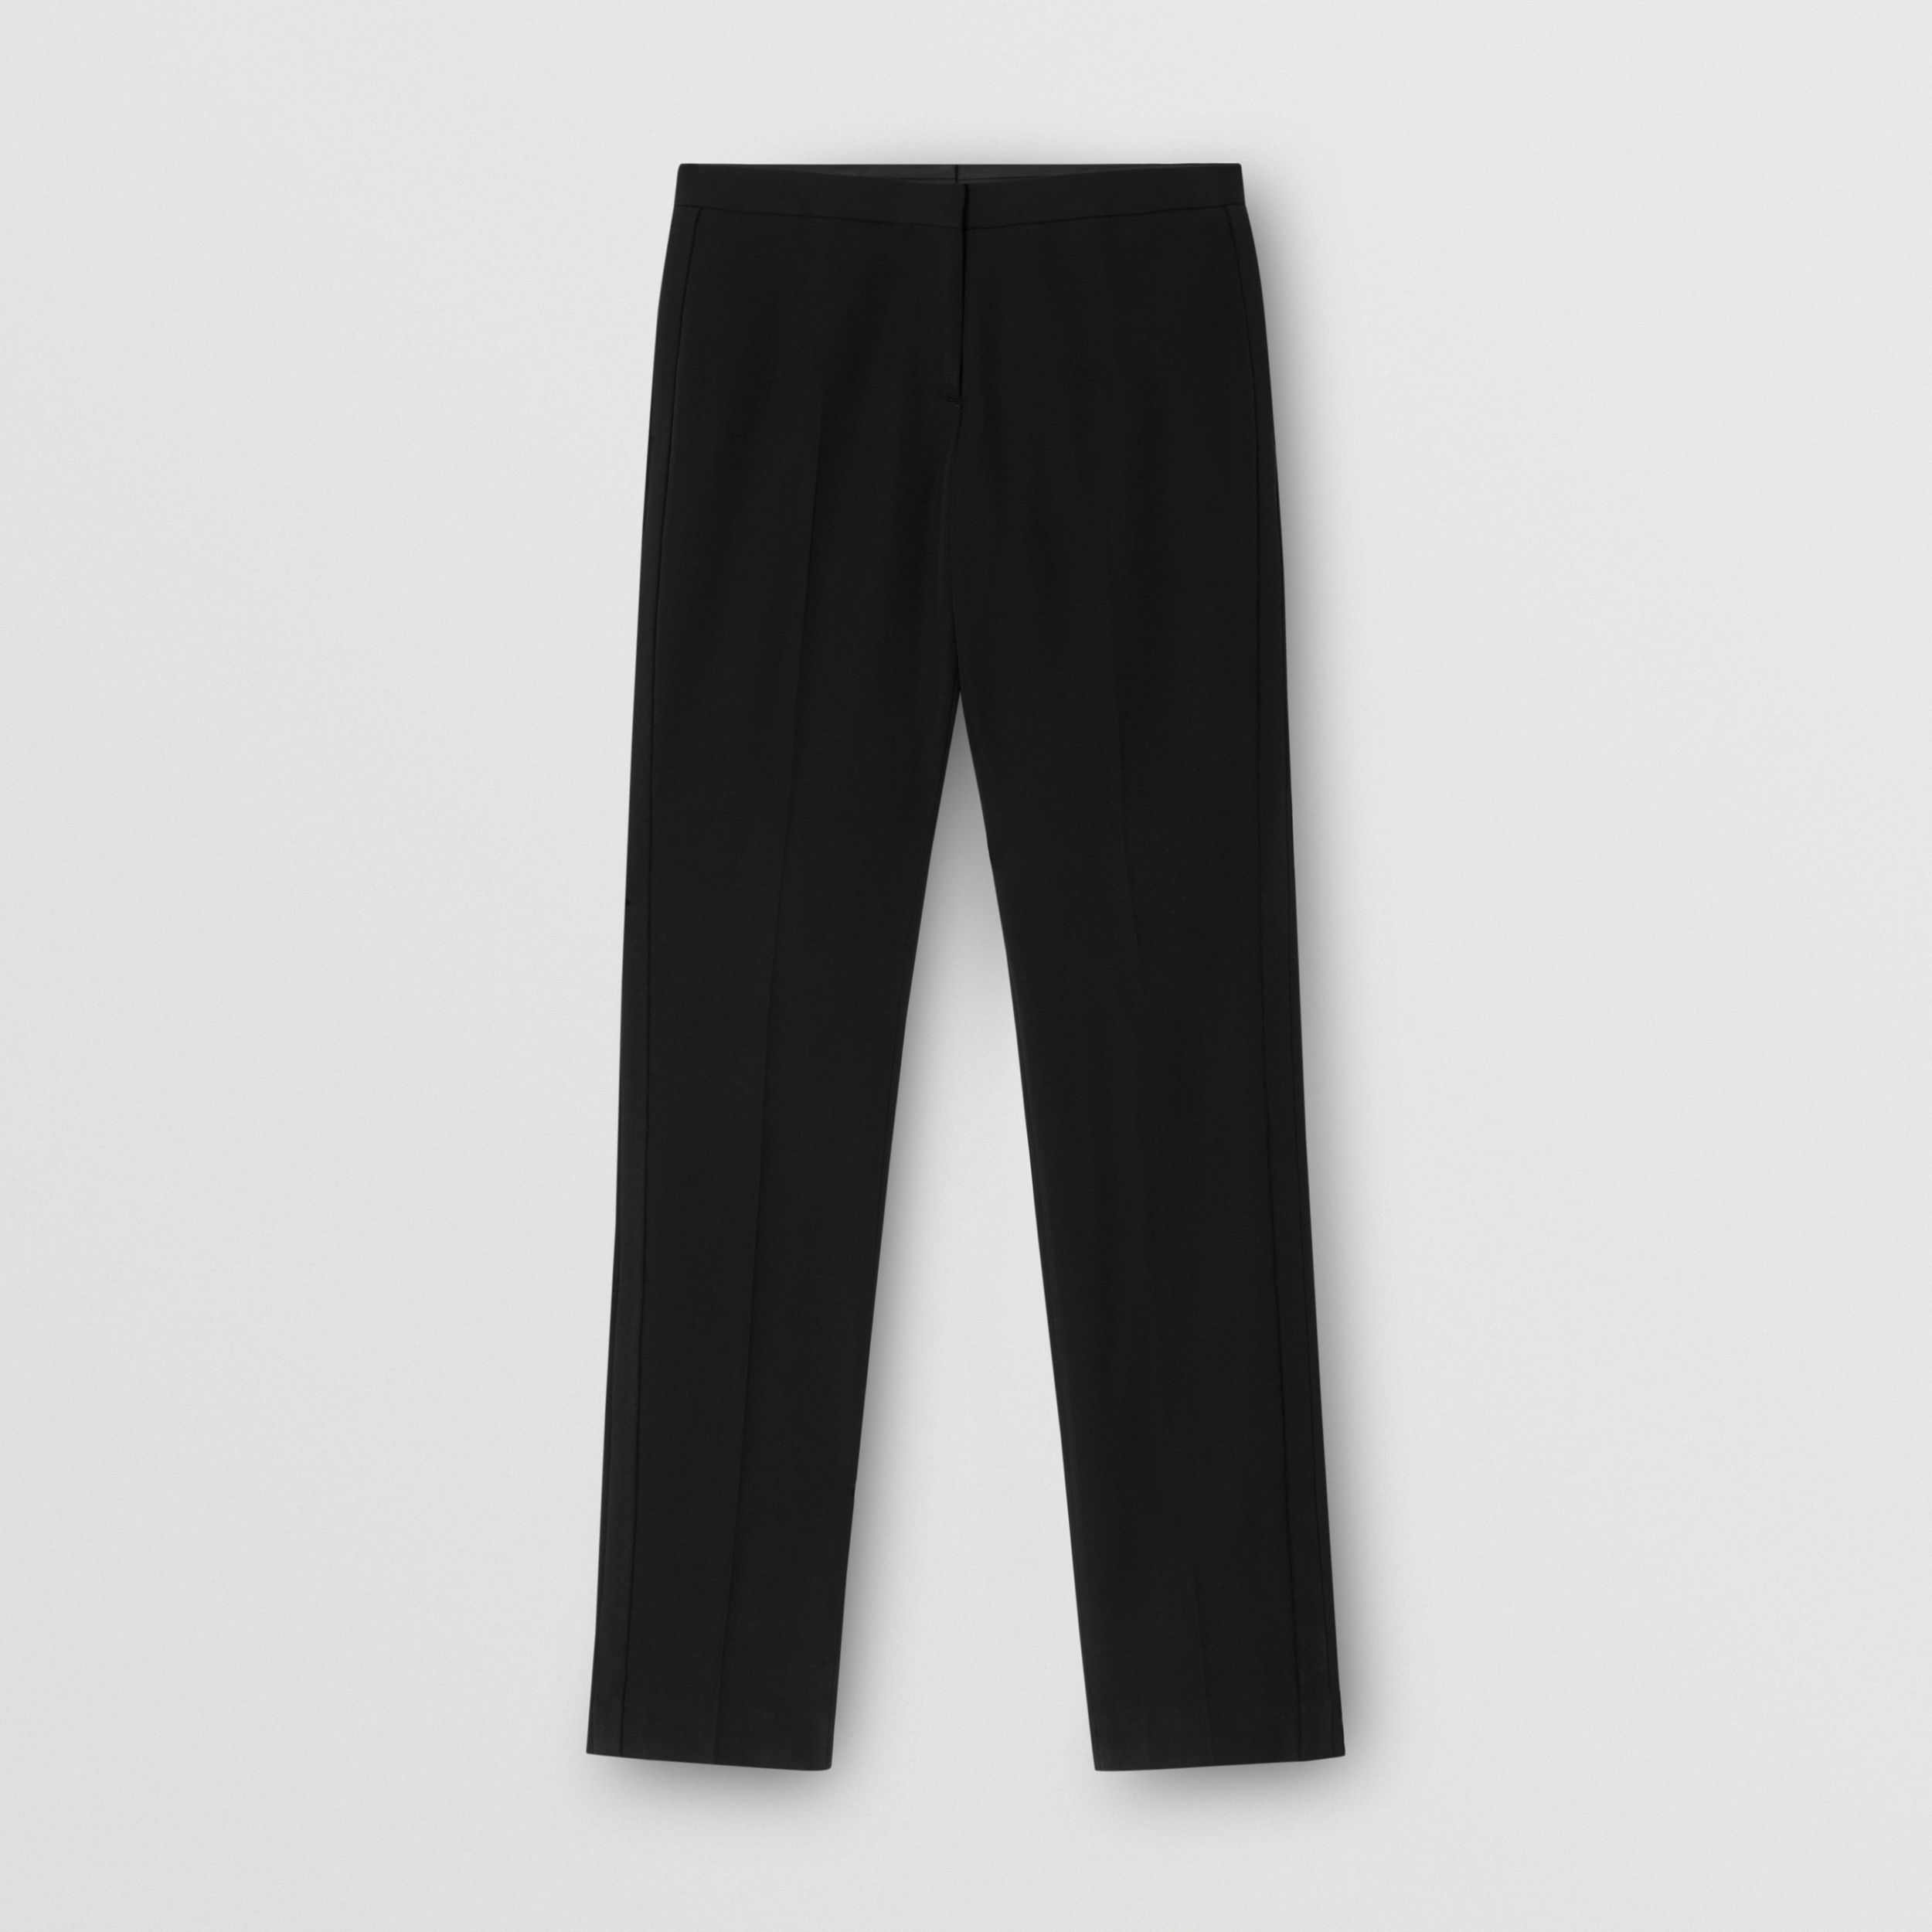 Silk Blend Side Stripe Wool Tailored Trousers in Black - Women | Burberry United States - 4